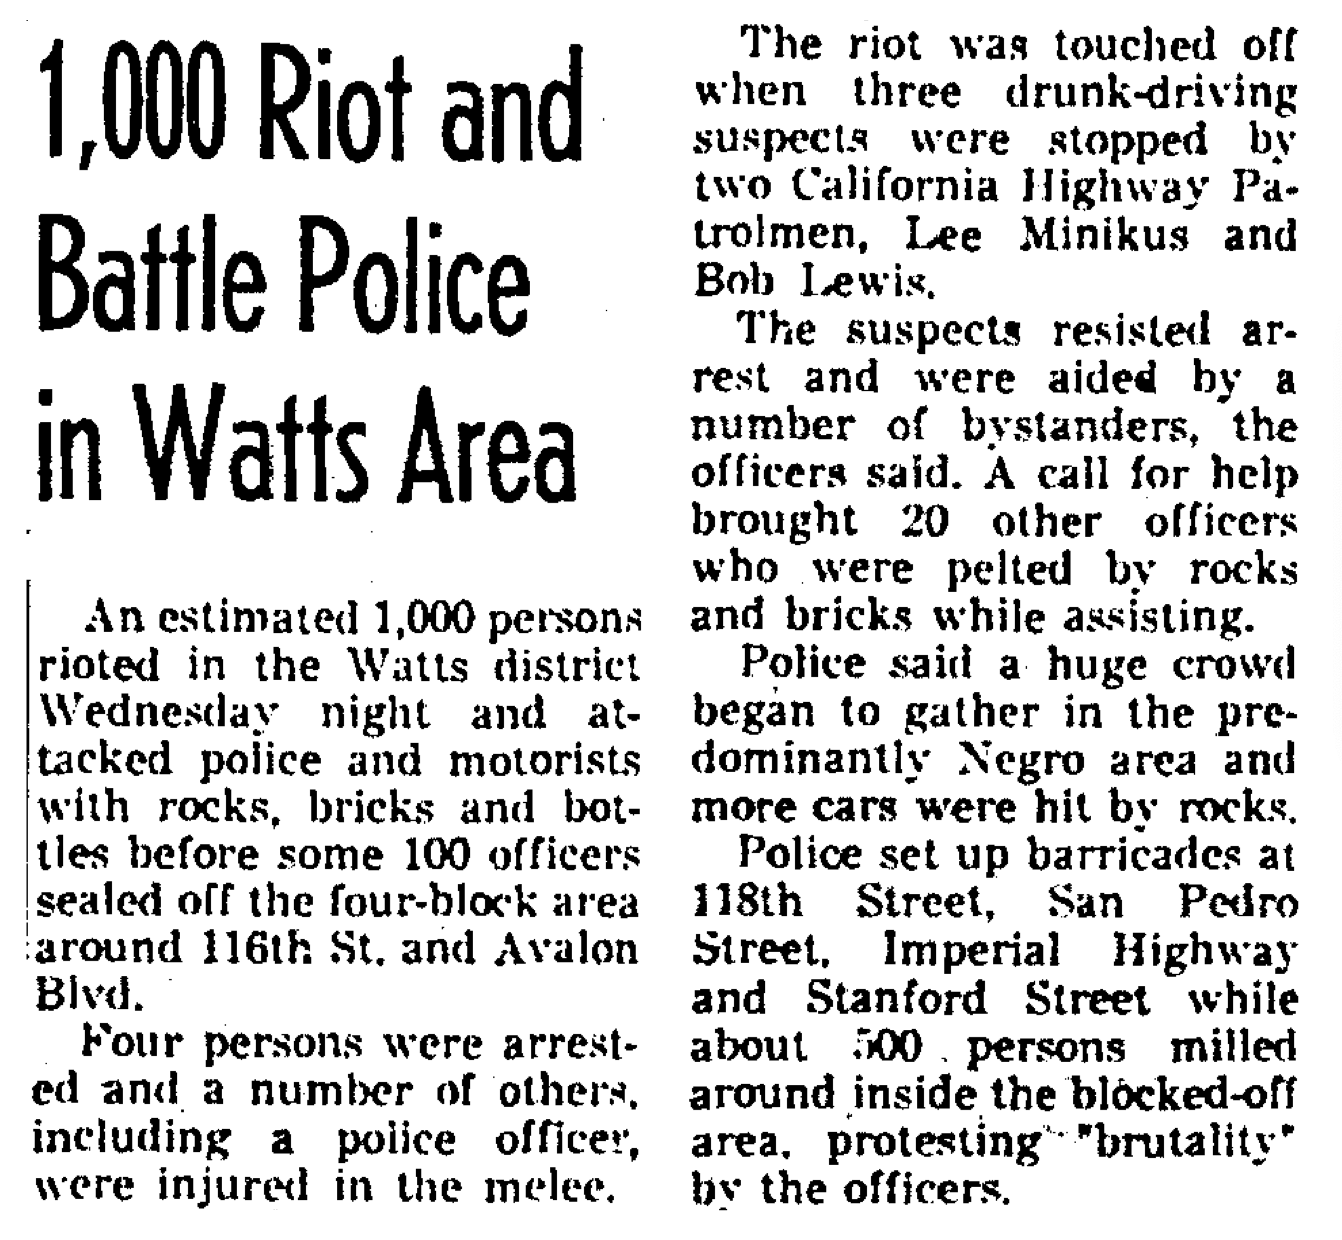 The key paragraph is the last one, which reads: Police set up barricades at 118th Street, San Pedro Street, Imperial Highway, and Stanford Street, while about 500 persons milled around inside the blocked off area, protesting 'brutality' by the officers.